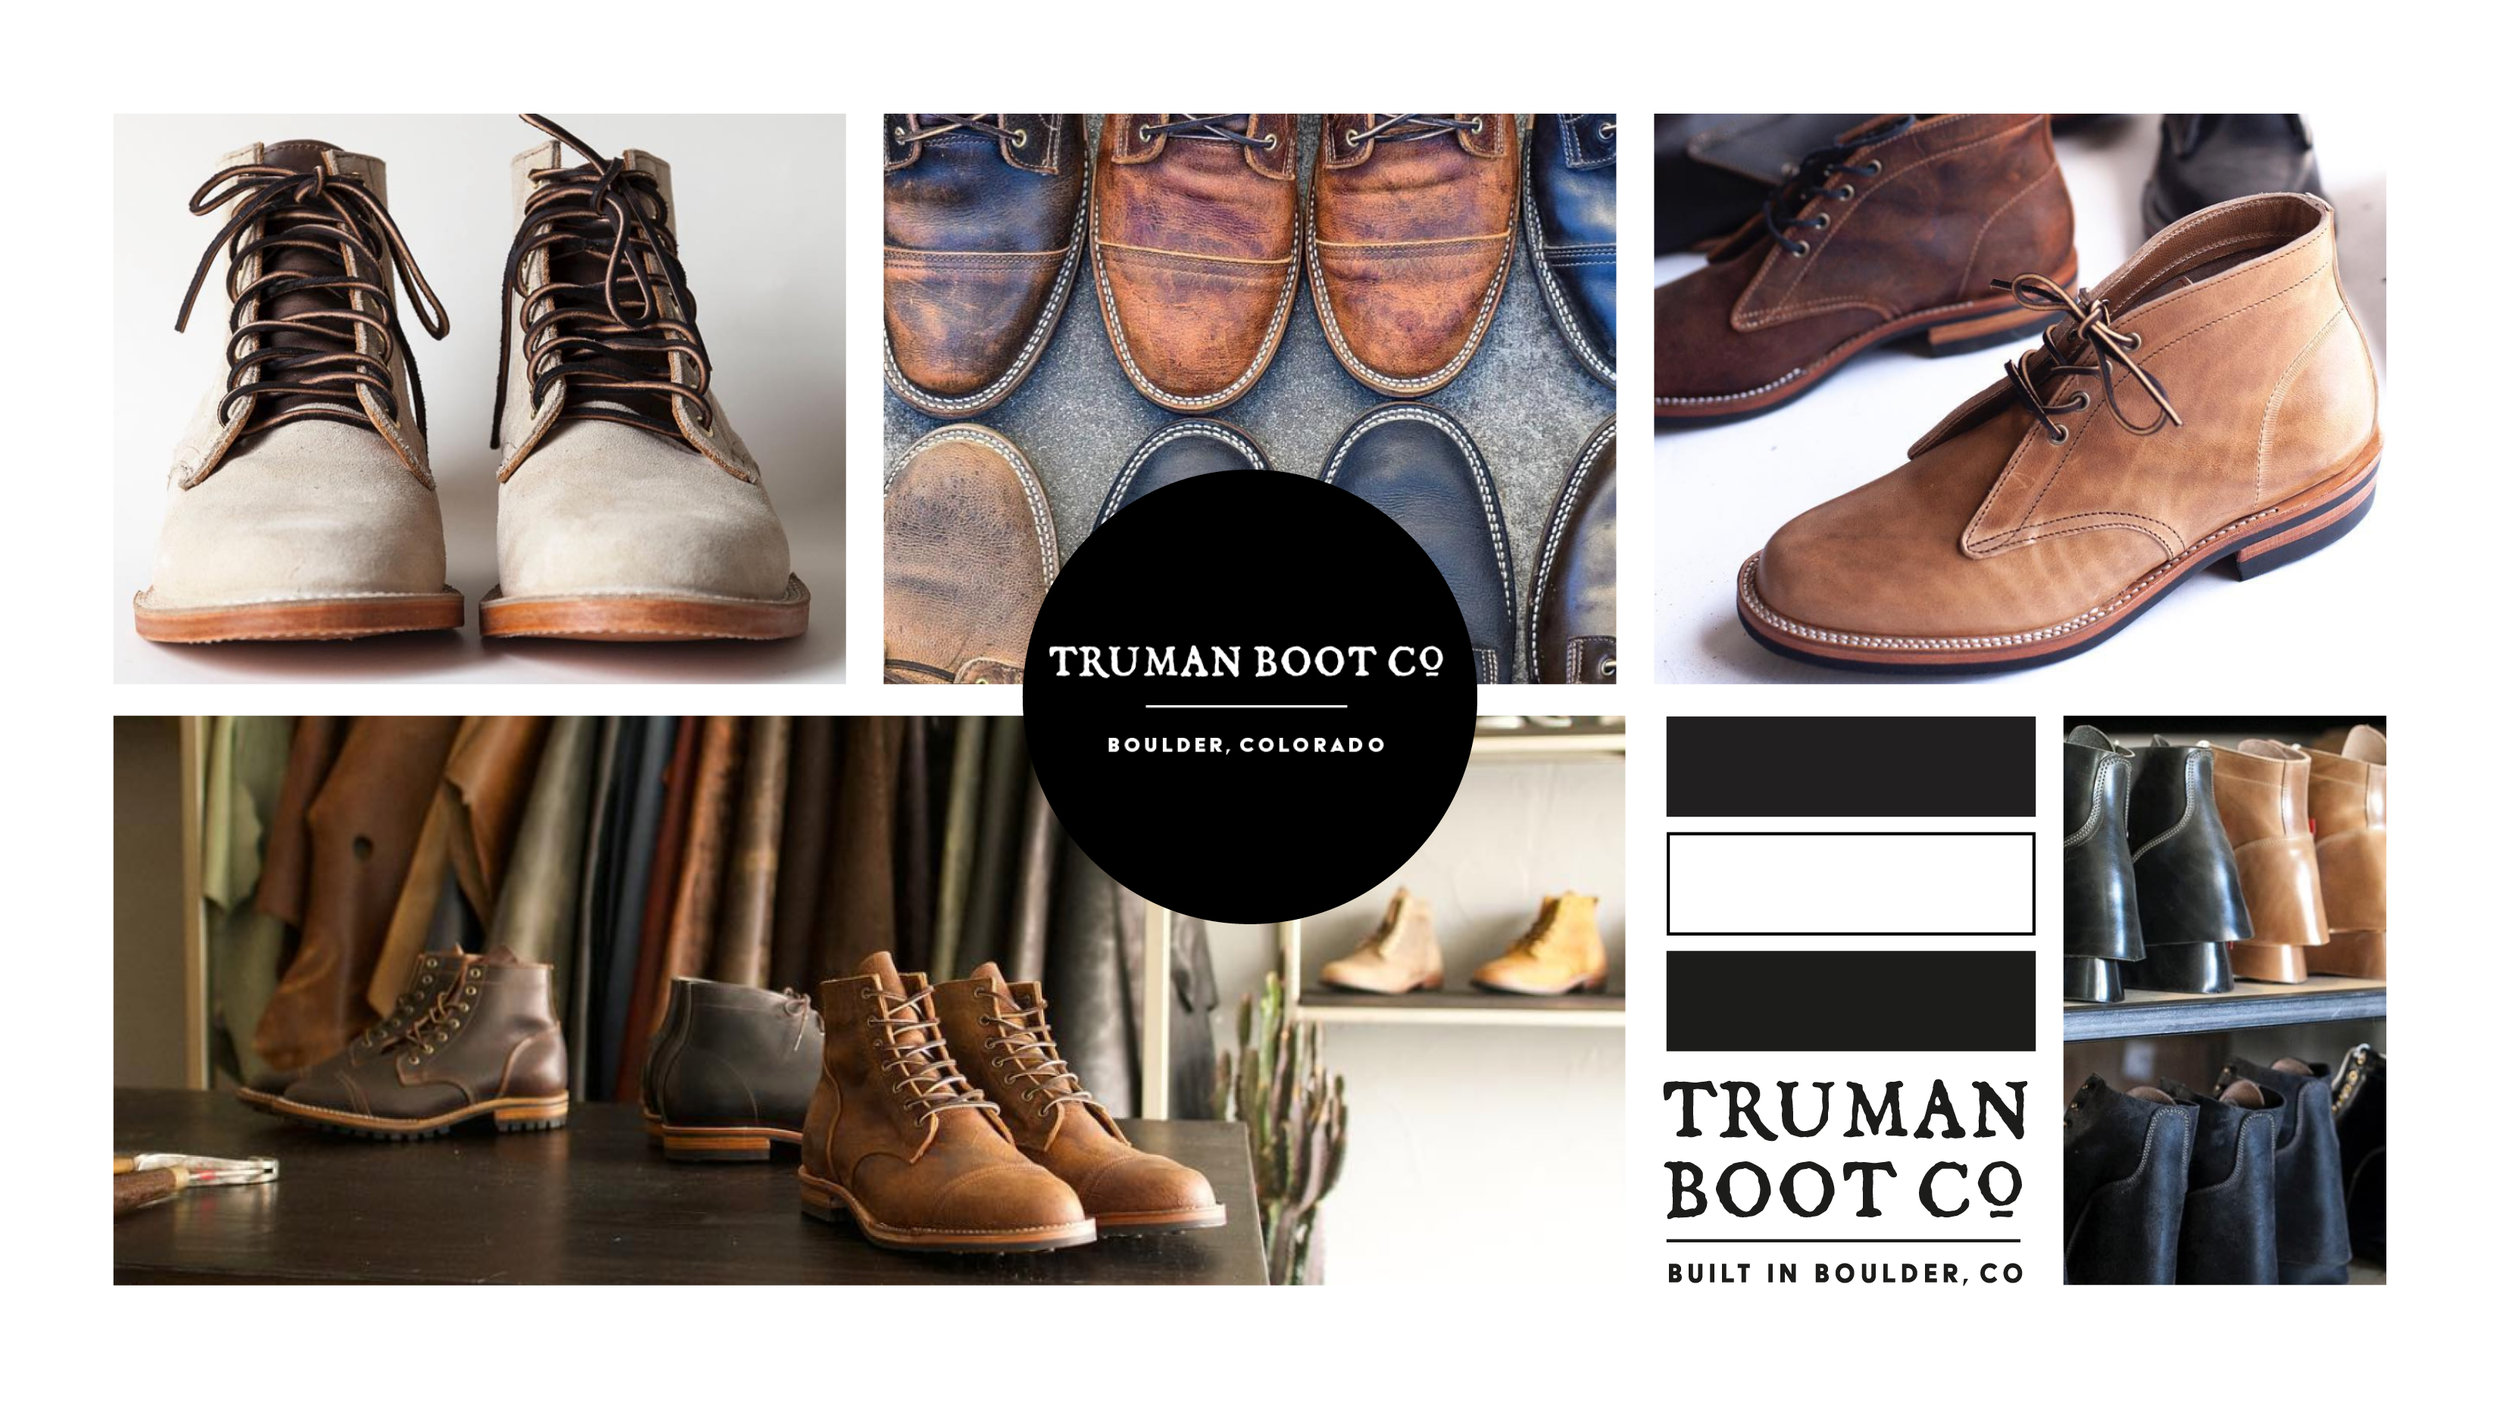 SW Designs used re-worked the Truman Boot logo, and designed promotional cards, business cards, hang tags and other marketing materials.